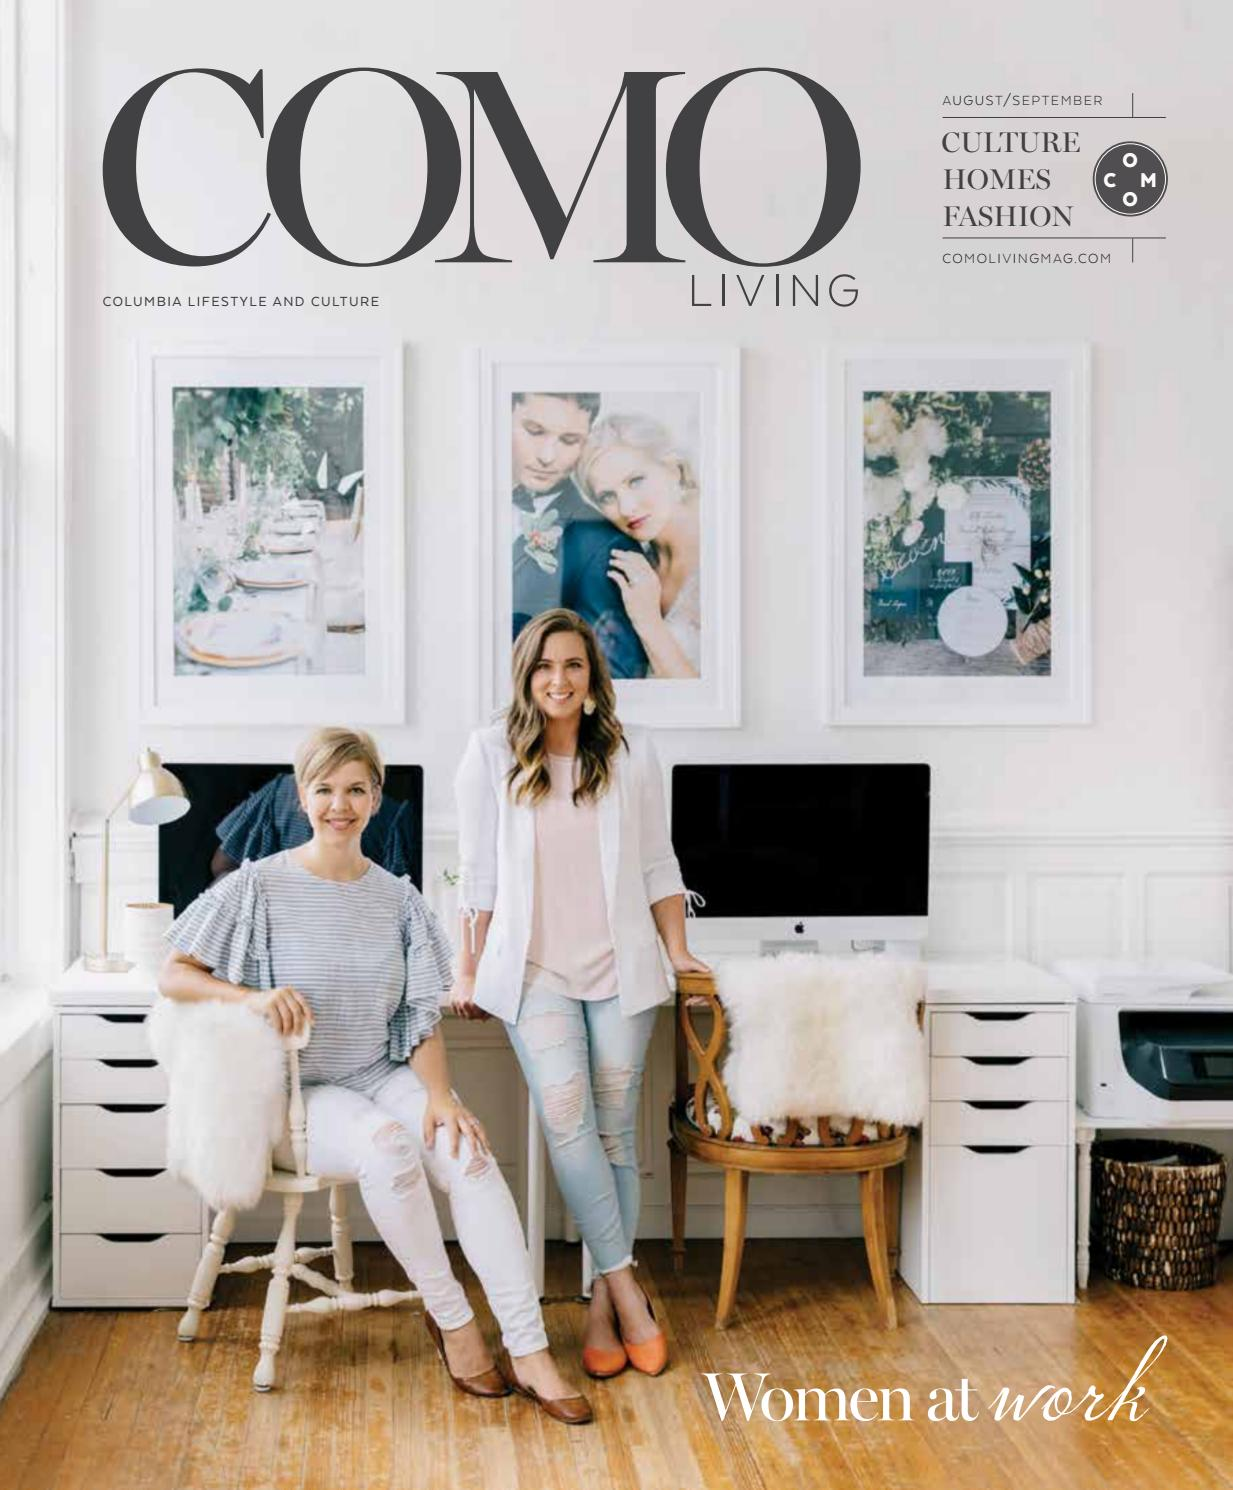 Como living magazine august september 2017 by business times company issuu